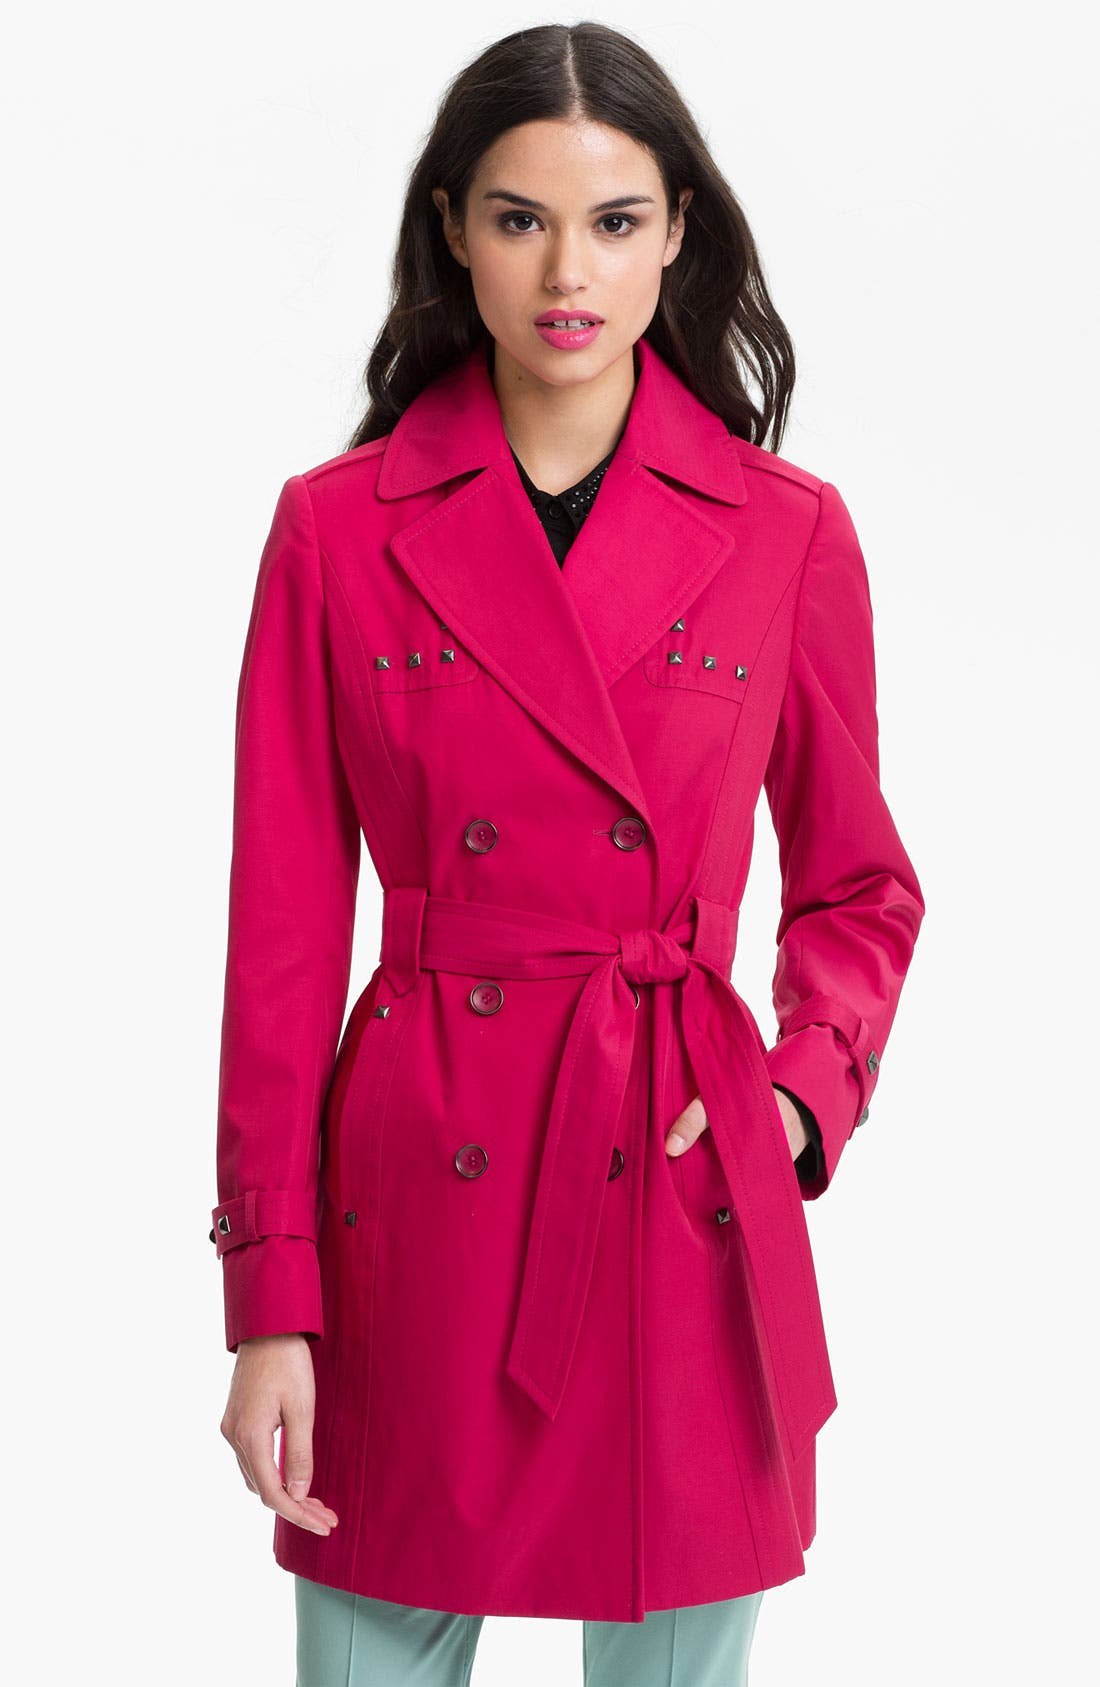 Alternate Image 1 Selected - Via Spiga Studded Double Breasted Trench Coat (Online Only)